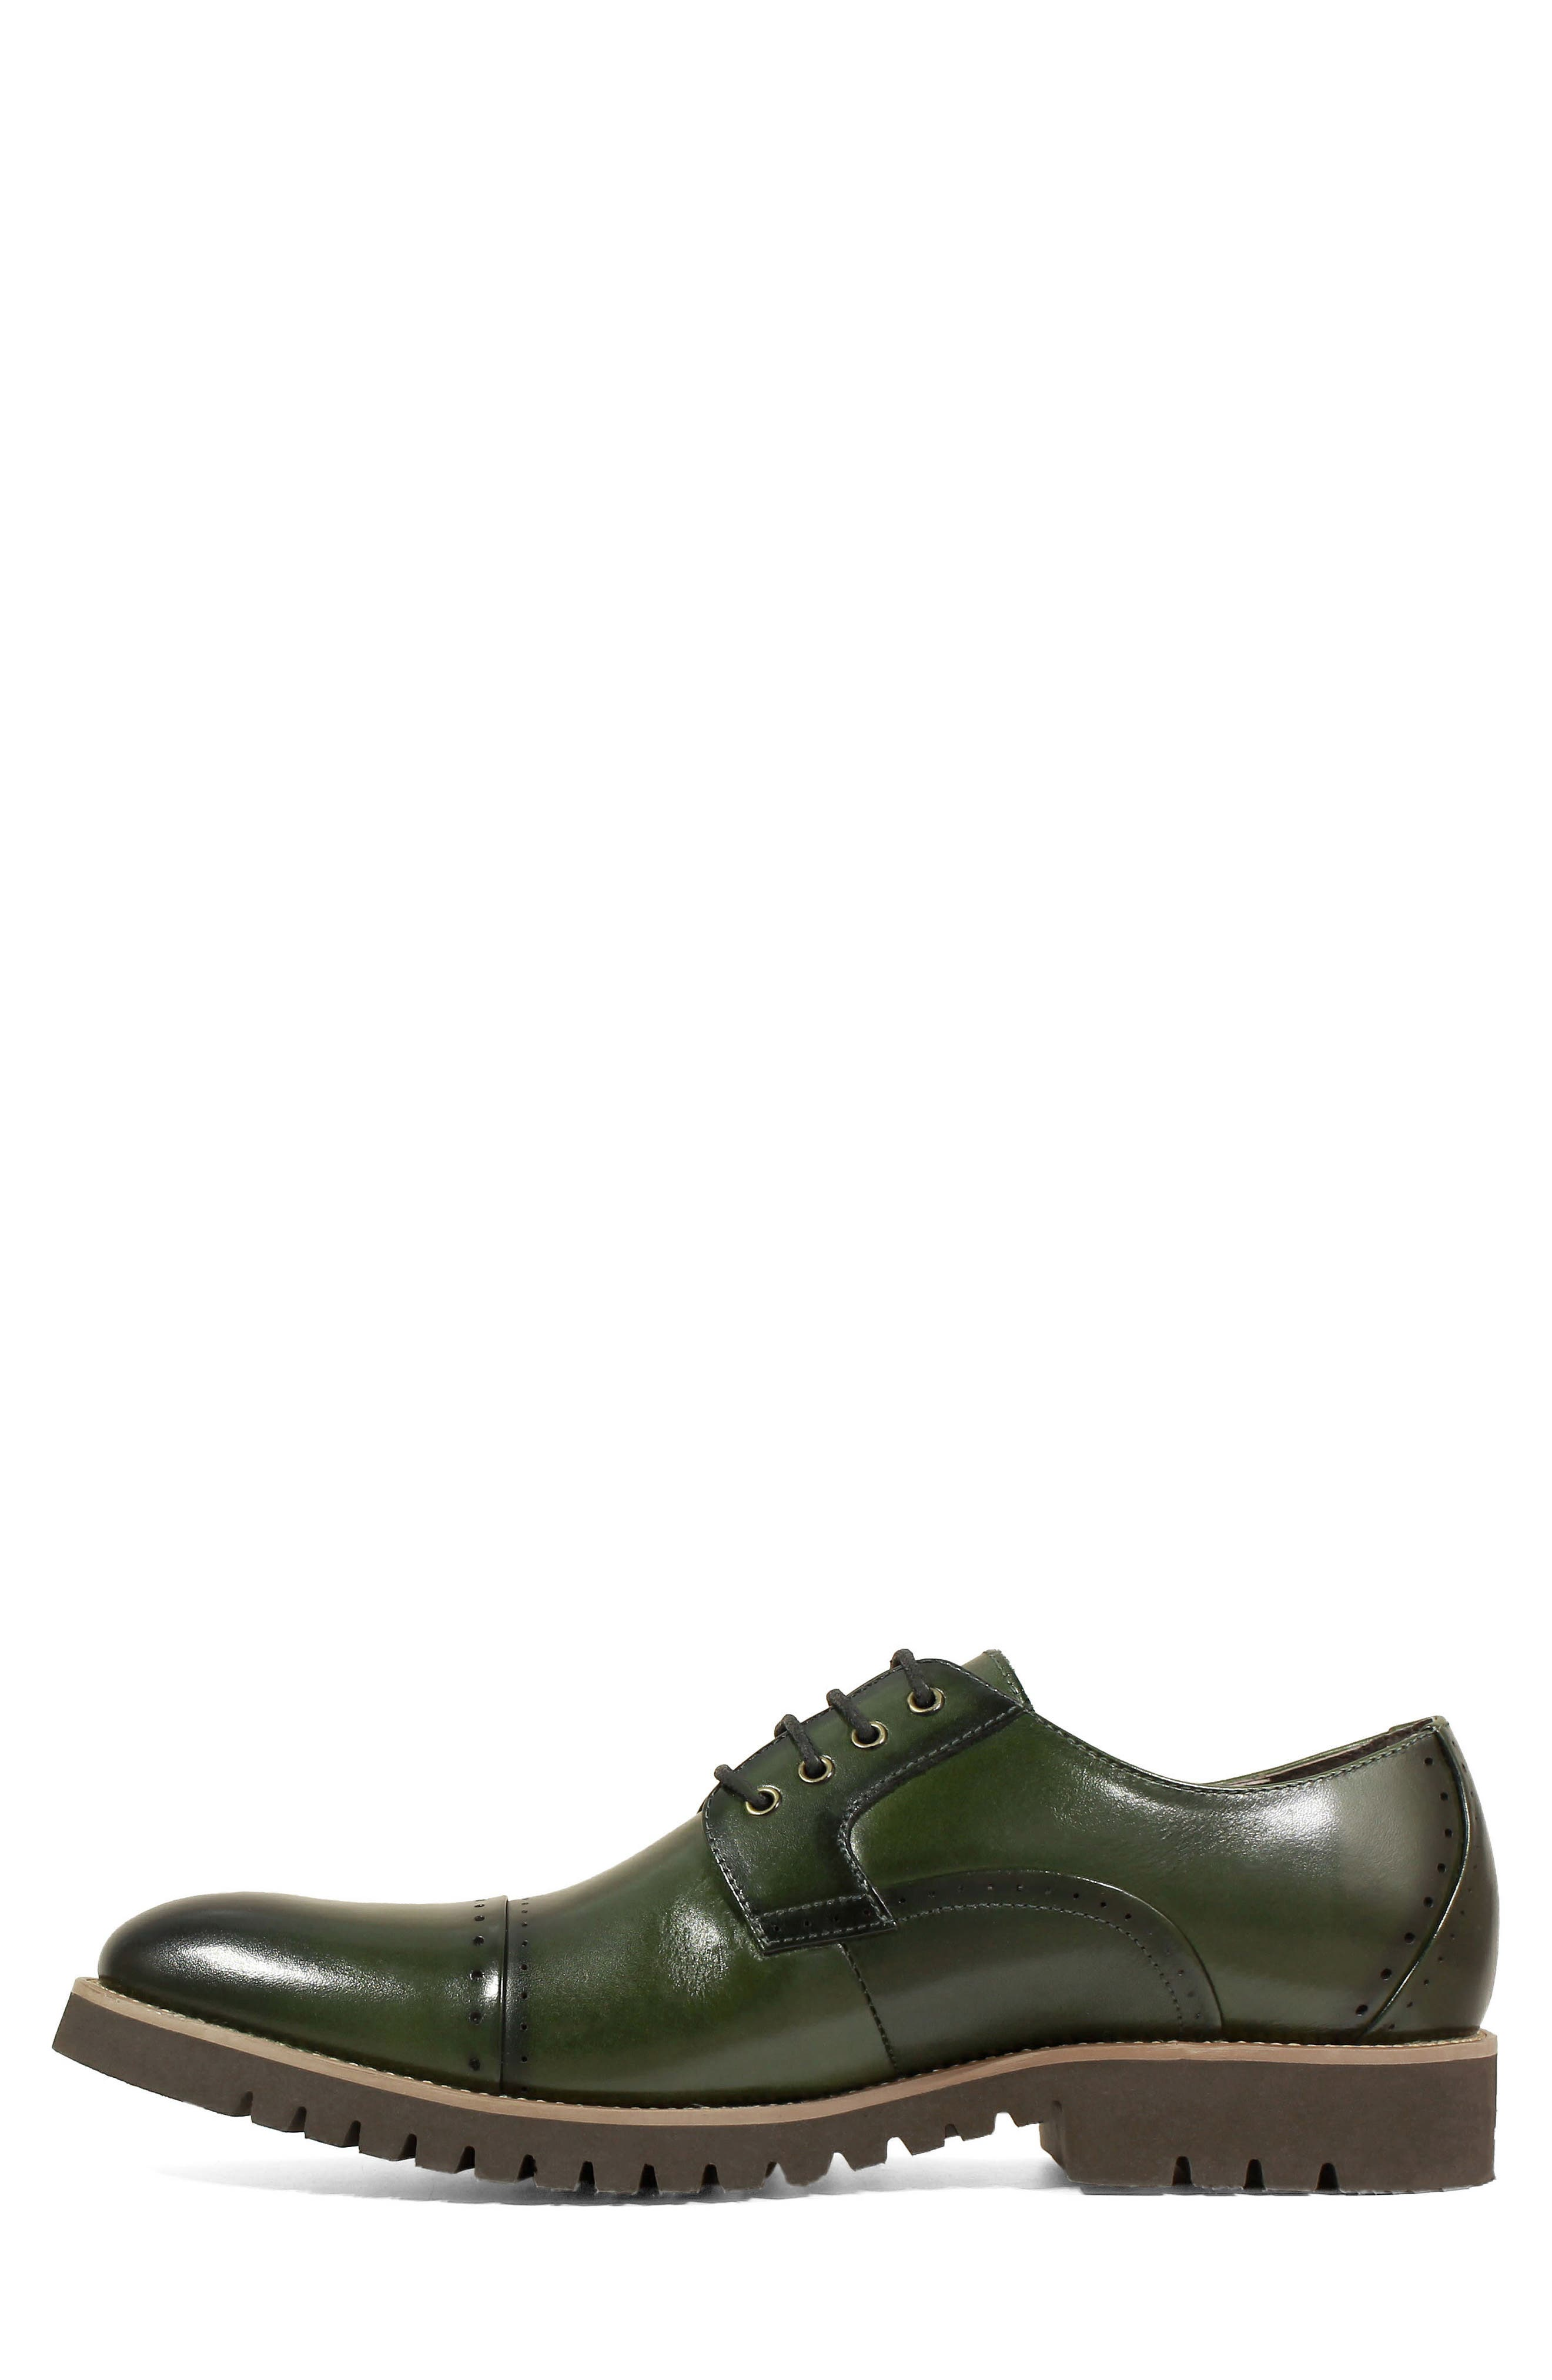 Barcliff Cap Toe Derby,                             Alternate thumbnail 7, color,                             CARGO GREEN LEATHER